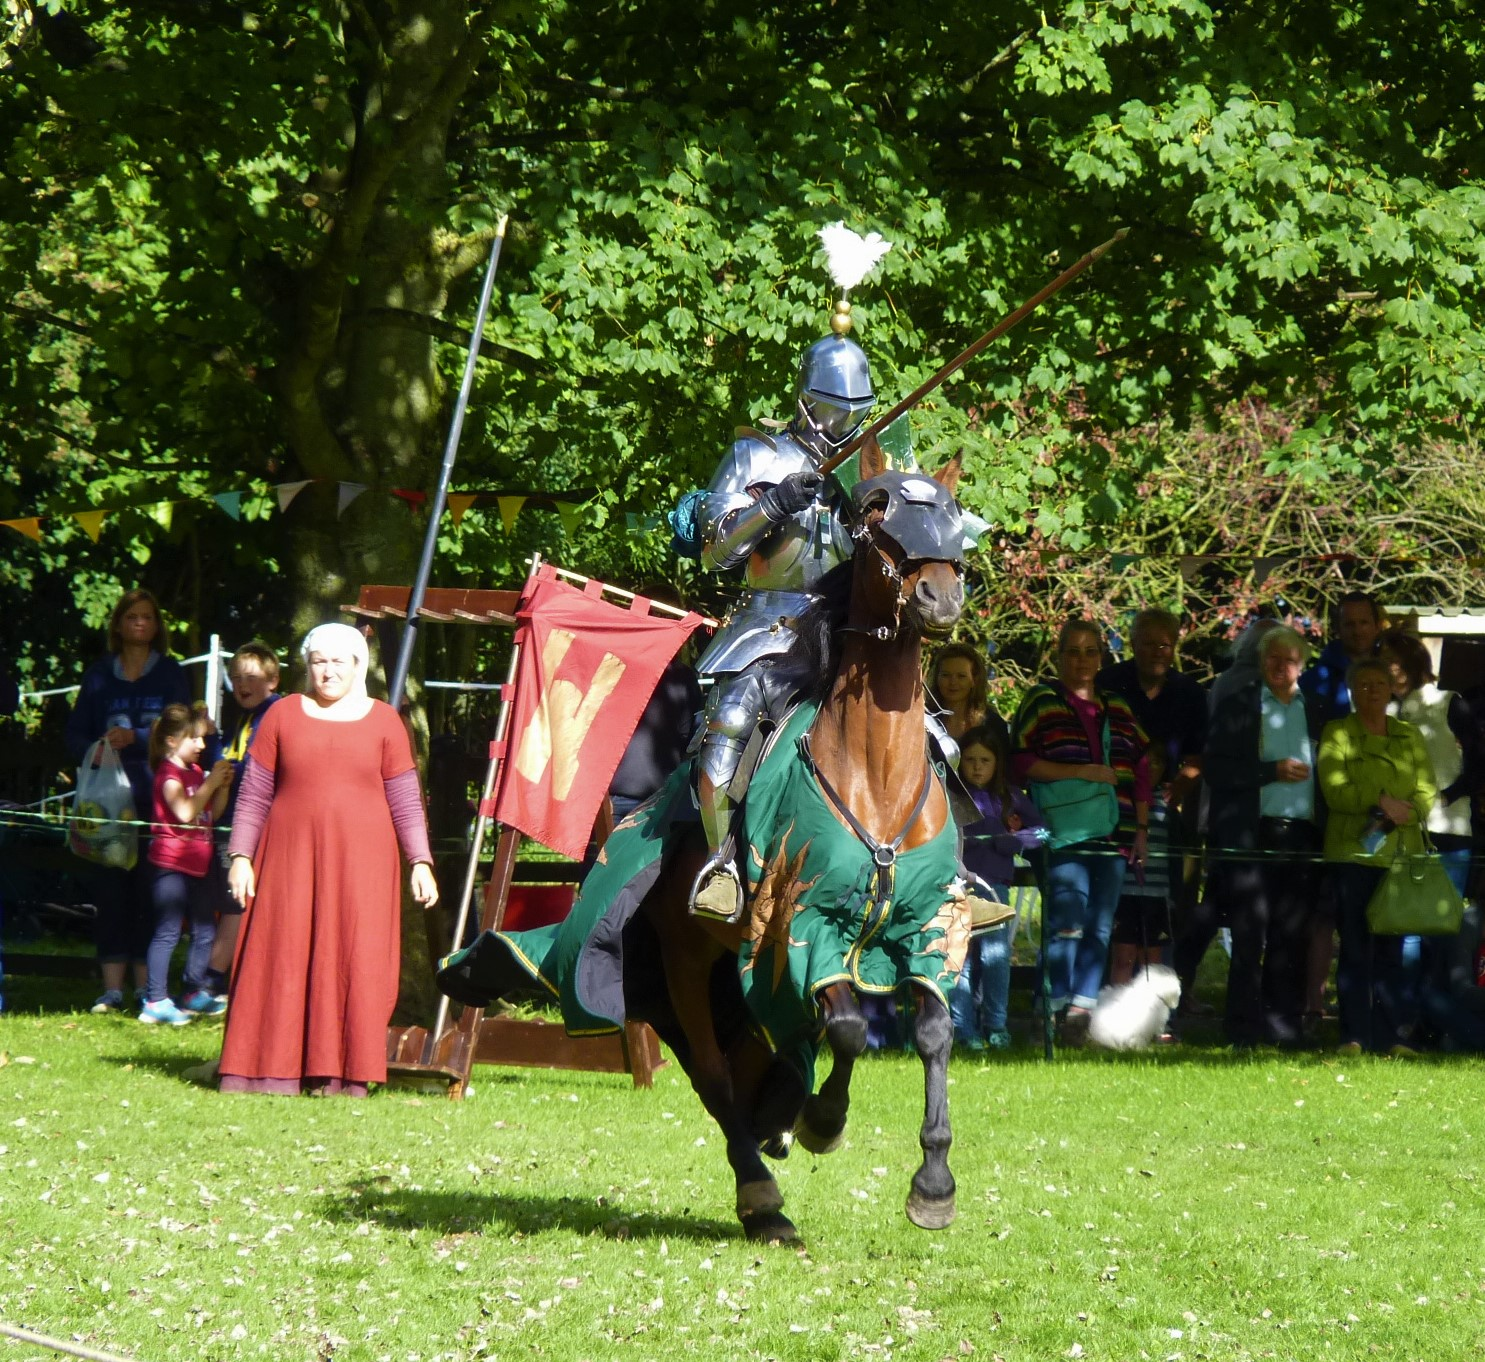 Wars of the Roses! – Joust and Battle Re-enactment